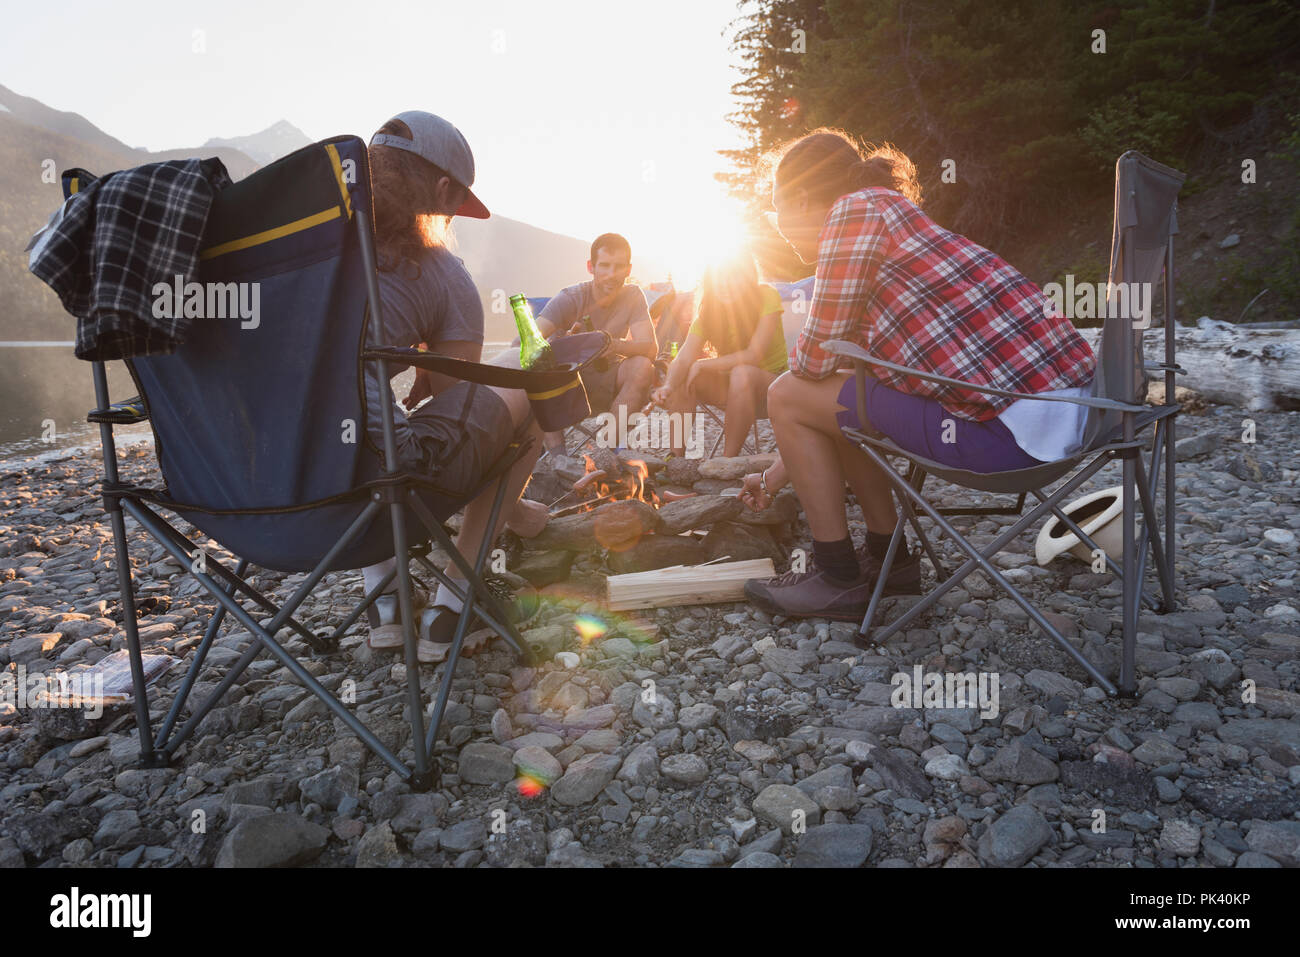 Group of friends roasting hot dogs on campfire - Stock Image